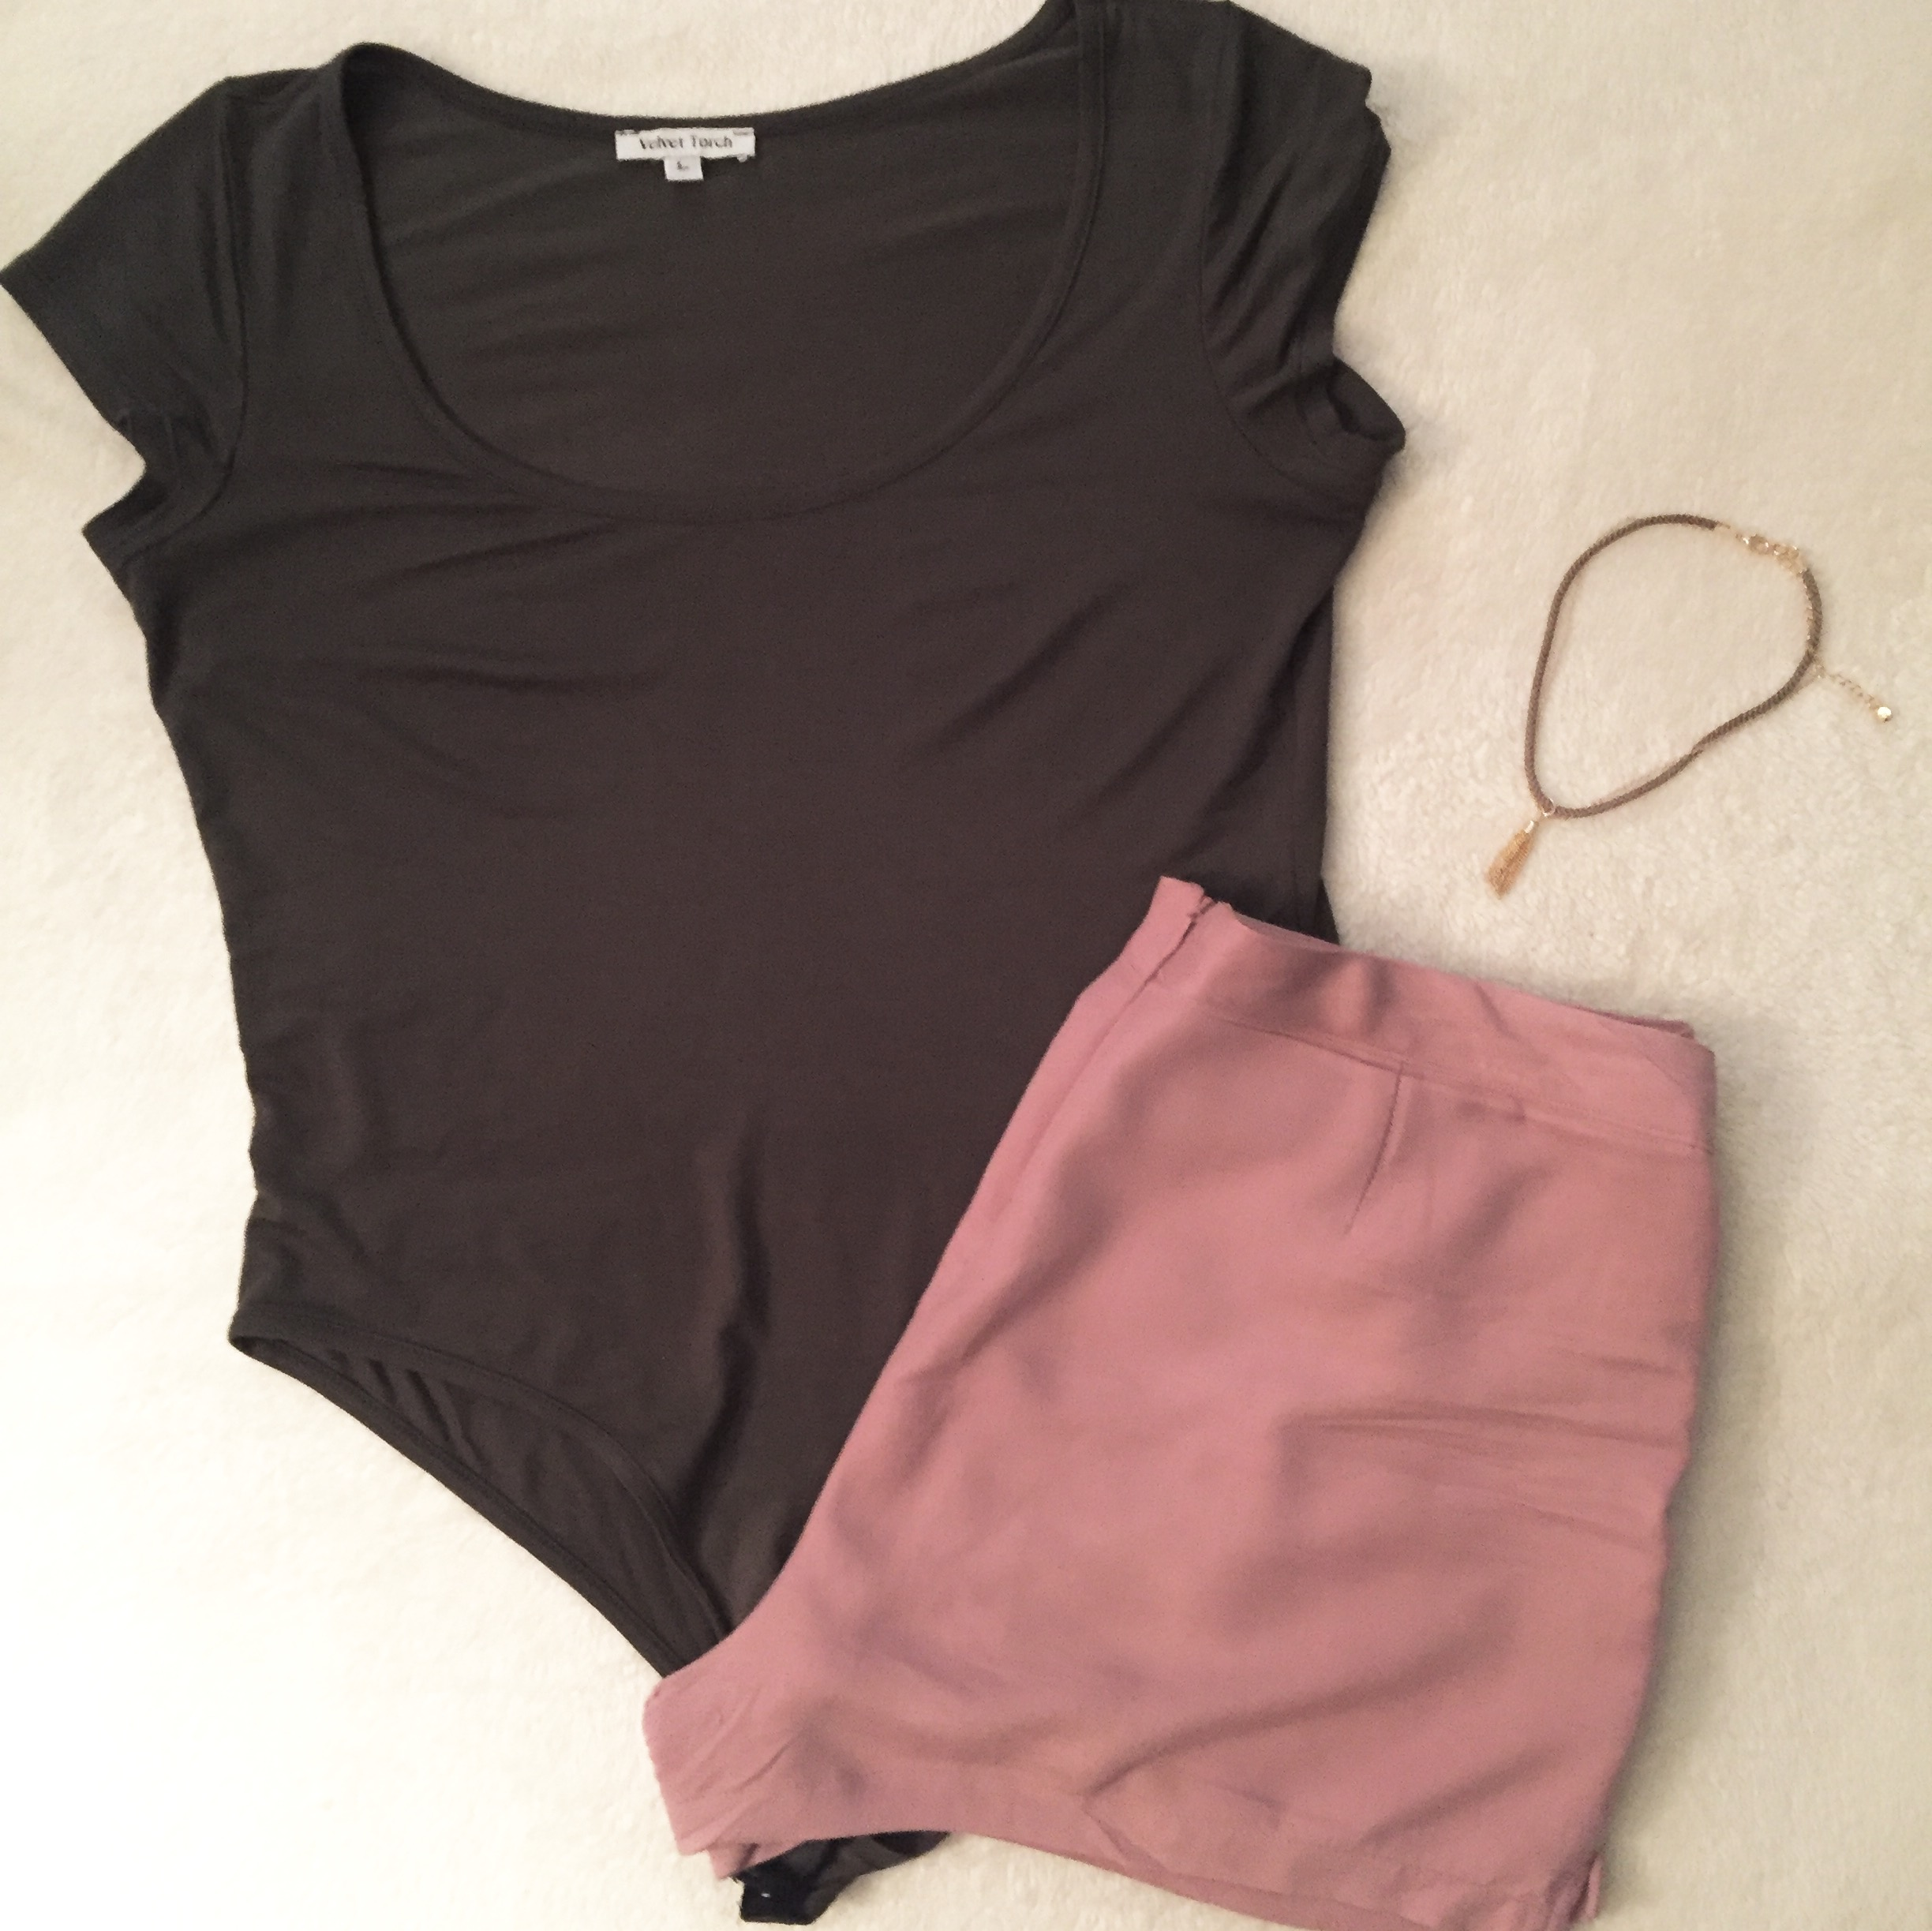 Olive green body suit and blush pink outfit